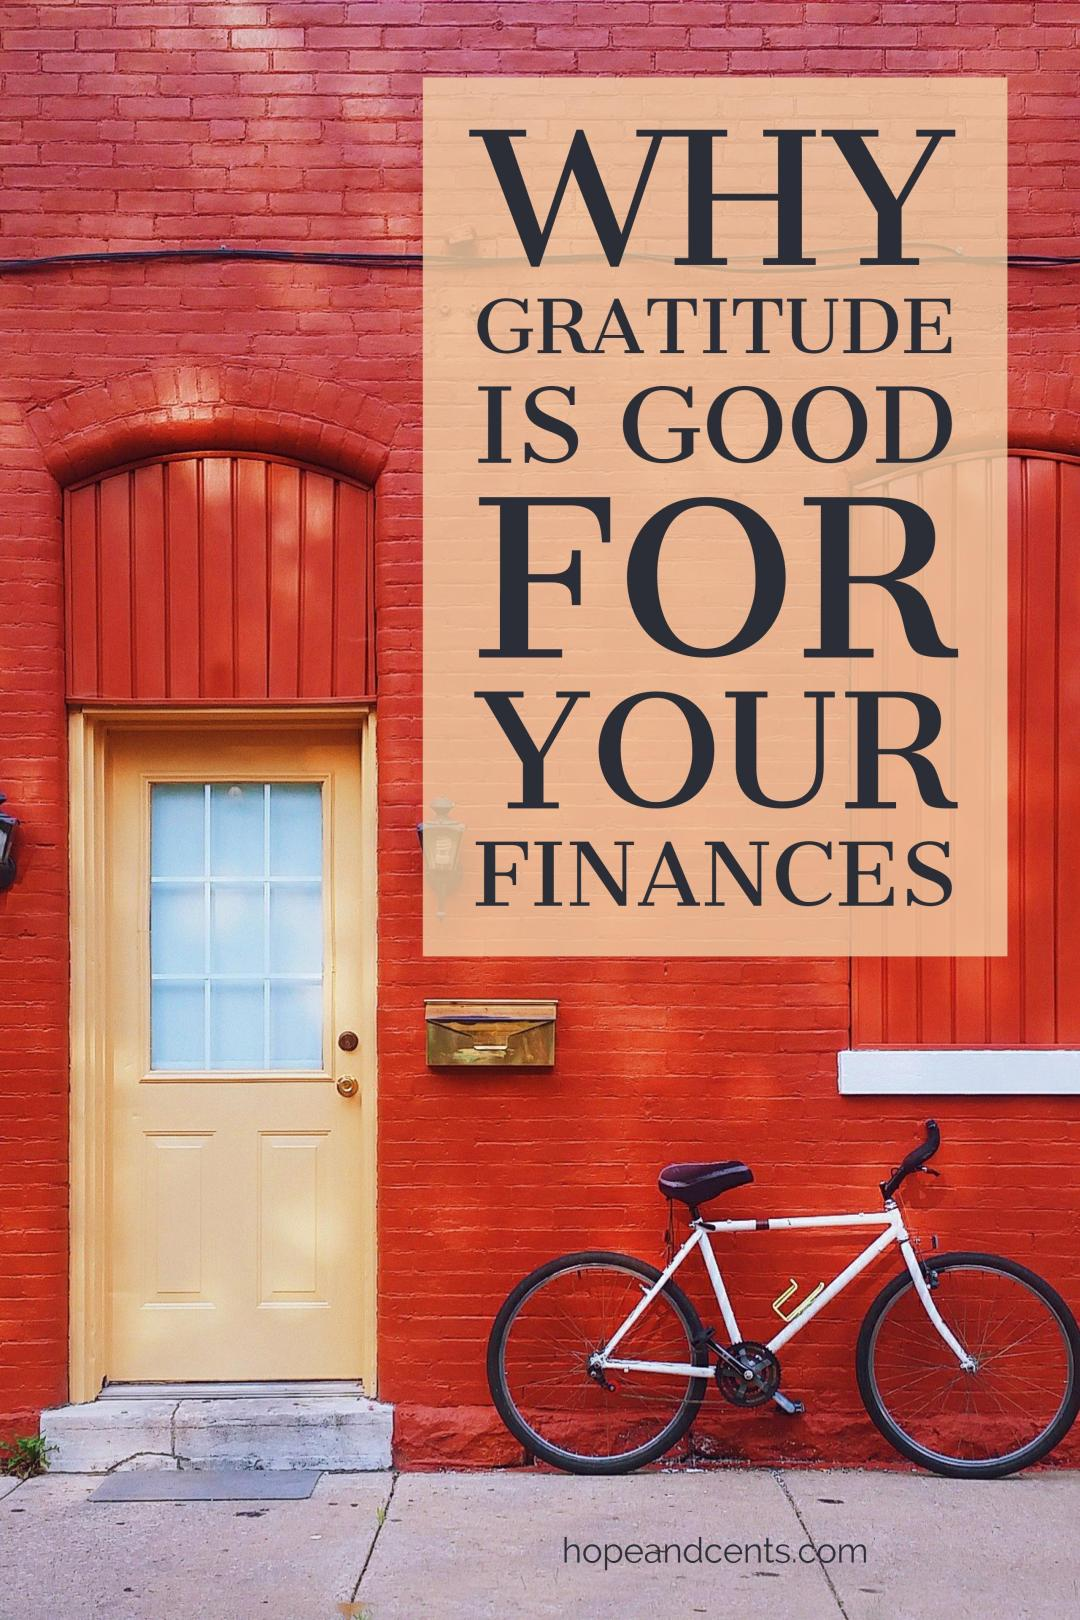 Why Gratitude is Good For Your Finances